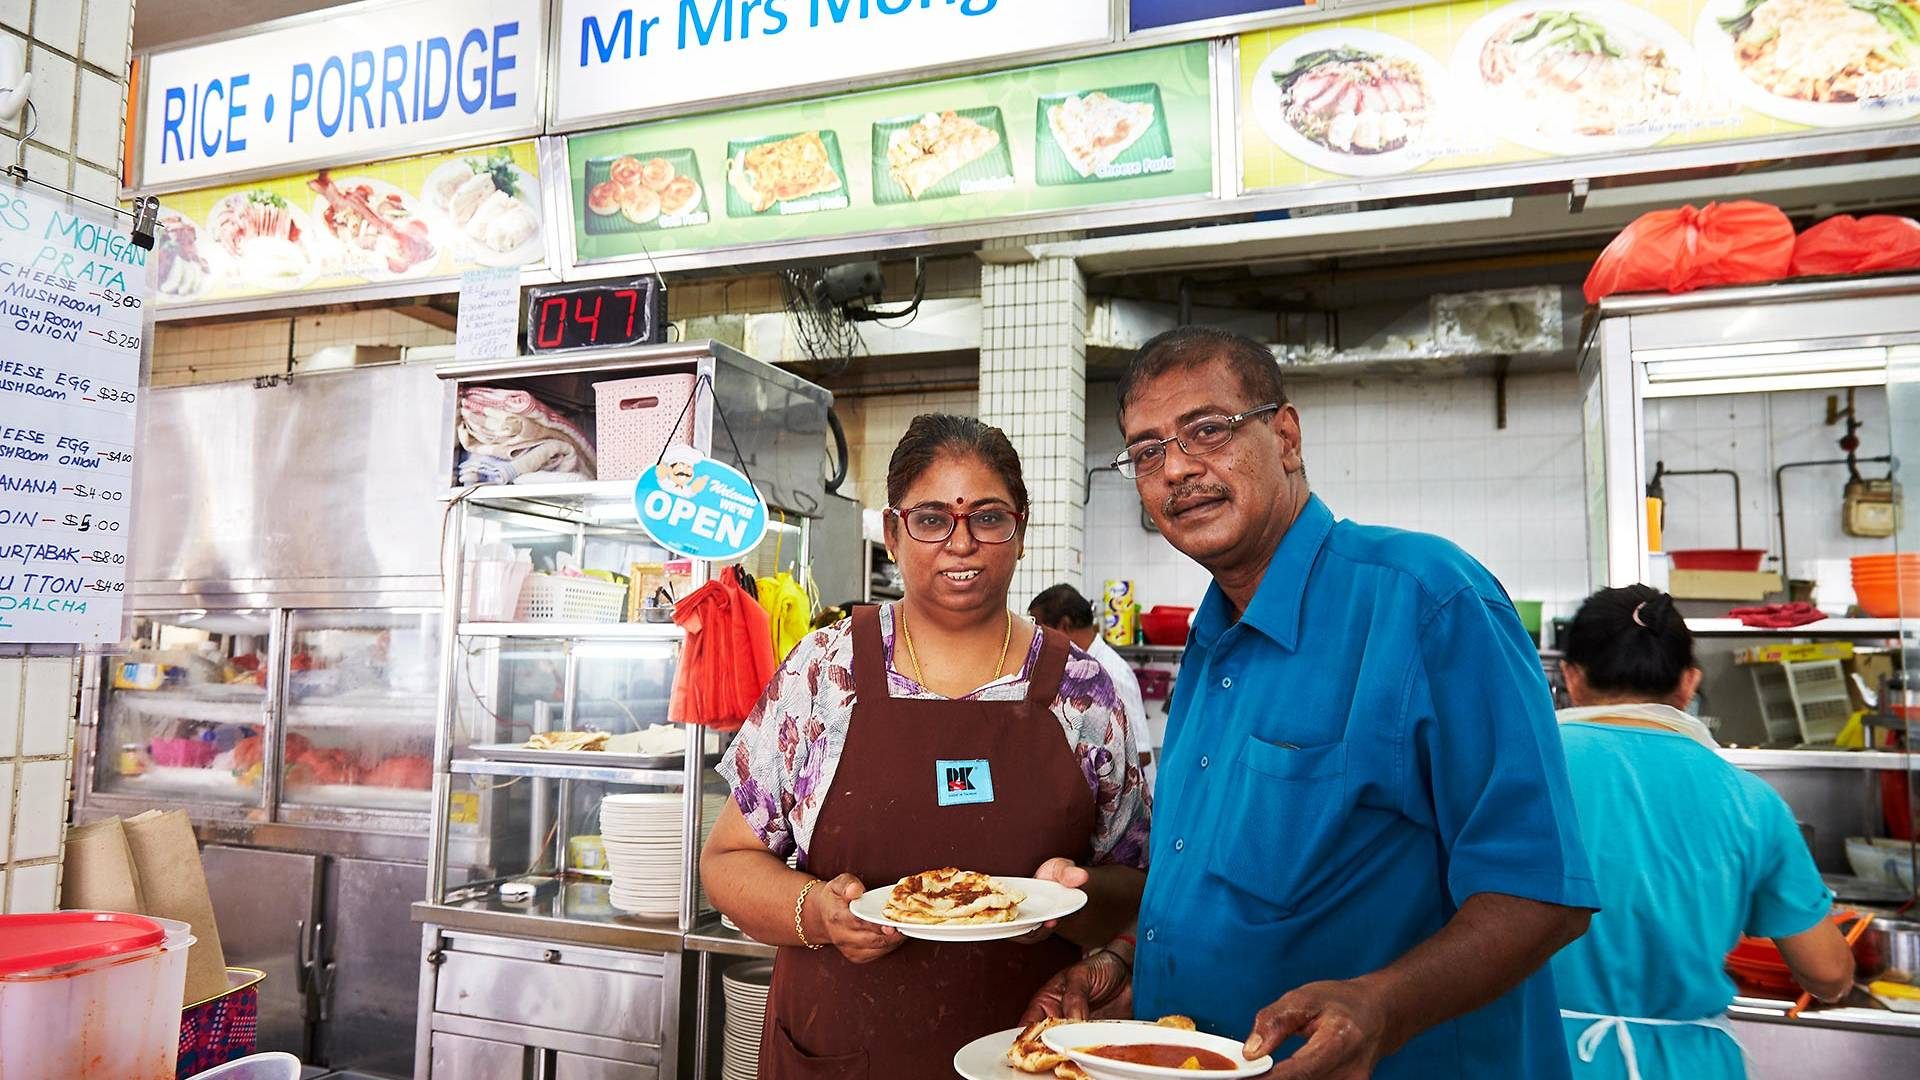 20201229-Mr and Mrs Mohgan's prata.jpg